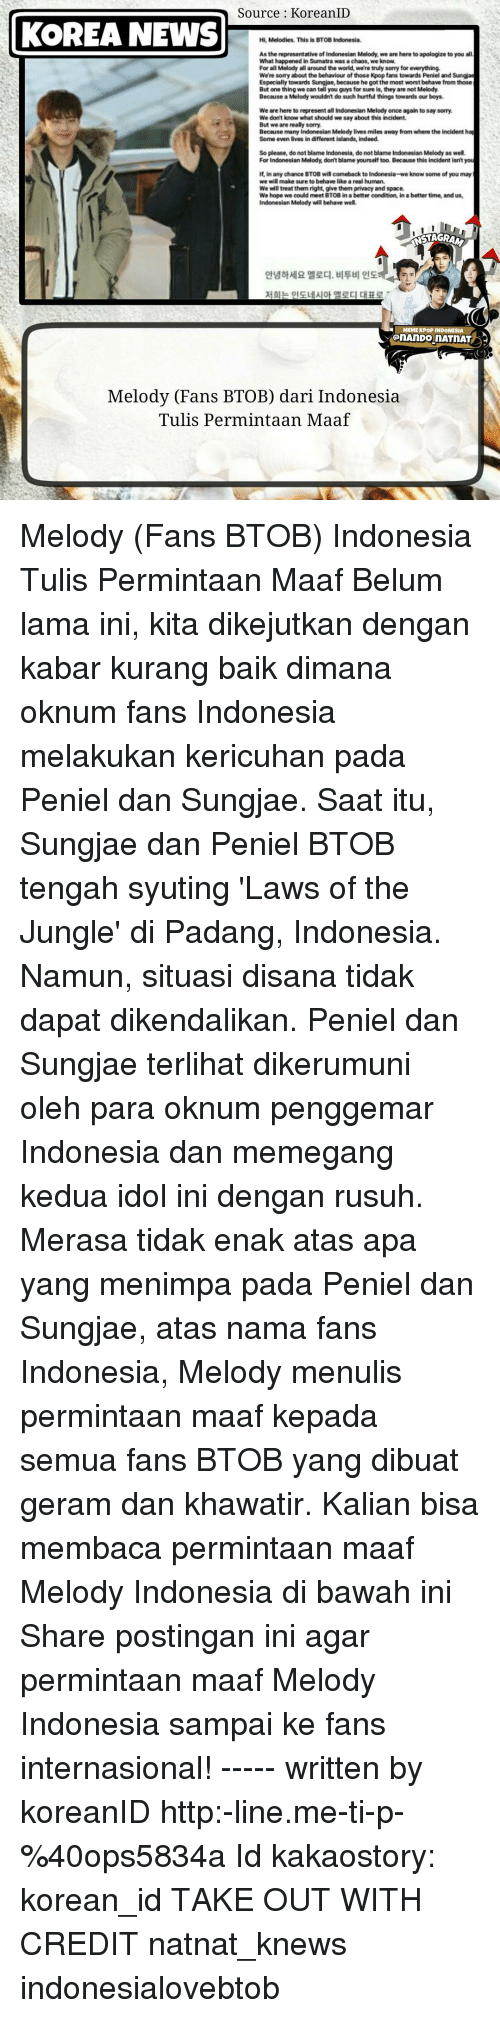 K-Pop, Korea, and Agar: Source KoreanID  KOREA NEWS  Hi, Melodies. This is BTOB Indonesia.  As the representative of Indonesian Melody,we are here to apologize to you all  What happened in Sumatra was a chaos, we know.  For all Melody all around the world, we're truly sorry for everything.  We're somy about the behaviour of those Kpopfans towards Peniel and Sungjae  Especially towards Sungjae,because he got the most worstbehave from those  But one thing we can tell you guys for sure is, they are not Melody.  Because a Melody wouldnt do such hurtful things towards our boys.  We are here to represent all Indonesian Melody once again to say sorry.  We don't know what should we say about this incident.  But we are really sorry.  Because many Indonesian Melody lives miles away from where the incident hap  Some even lives in different islands, indeed.  So please, do not blame Indonesia, do not blame Indonesian Melody as well.  For Indonesian Melody, don't blame yourself too. Because this incident isntyou  If, in any chance BTOB wil comeback to Indonesia-we know some of you may  we will make sure to behave likeareal human.  Wewilltreat them right, give them privacy and space.  We hope we could meet BTOB in a better condition, in a better time, and us,  Indonesian Melody will behave well.  I  MEMEKPOP INDONESIA  OnAnDOnATNAT  Melody (Fans BTOB) dari Indonesia  Tulis Permintaan Maaf Melody (Fans BTOB) Indonesia Tulis Permintaan Maaf Belum lama ini, kita dikejutkan dengan kabar kurang baik dimana oknum fans Indonesia melakukan kericuhan pada Peniel dan Sungjae. Saat itu, Sungjae dan Peniel BTOB tengah syuting 'Laws of the Jungle' di Padang, Indonesia. Namun, situasi disana tidak dapat dikendalikan. Peniel dan Sungjae terlihat dikerumuni oleh para oknum penggemar Indonesia dan memegang kedua idol ini dengan rusuh. Merasa tidak enak atas apa yang menimpa pada Peniel dan Sungjae, atas nama fans Indonesia, Melody menulis permintaan maaf kepada semua fans BTOB yang dibuat geram dan khawatir. Kalian bisa membaca permintaan maaf Melody Indonesia di bawah ini Share postingan ini agar permintaan maaf Melody Indonesia sampai ke fans internasional! ----- written by koreanID http:-line.me-ti-p-%40ops5834a Id kakaostory: korean_id TAKE OUT WITH CREDIT natnat_knews indonesialovebtob